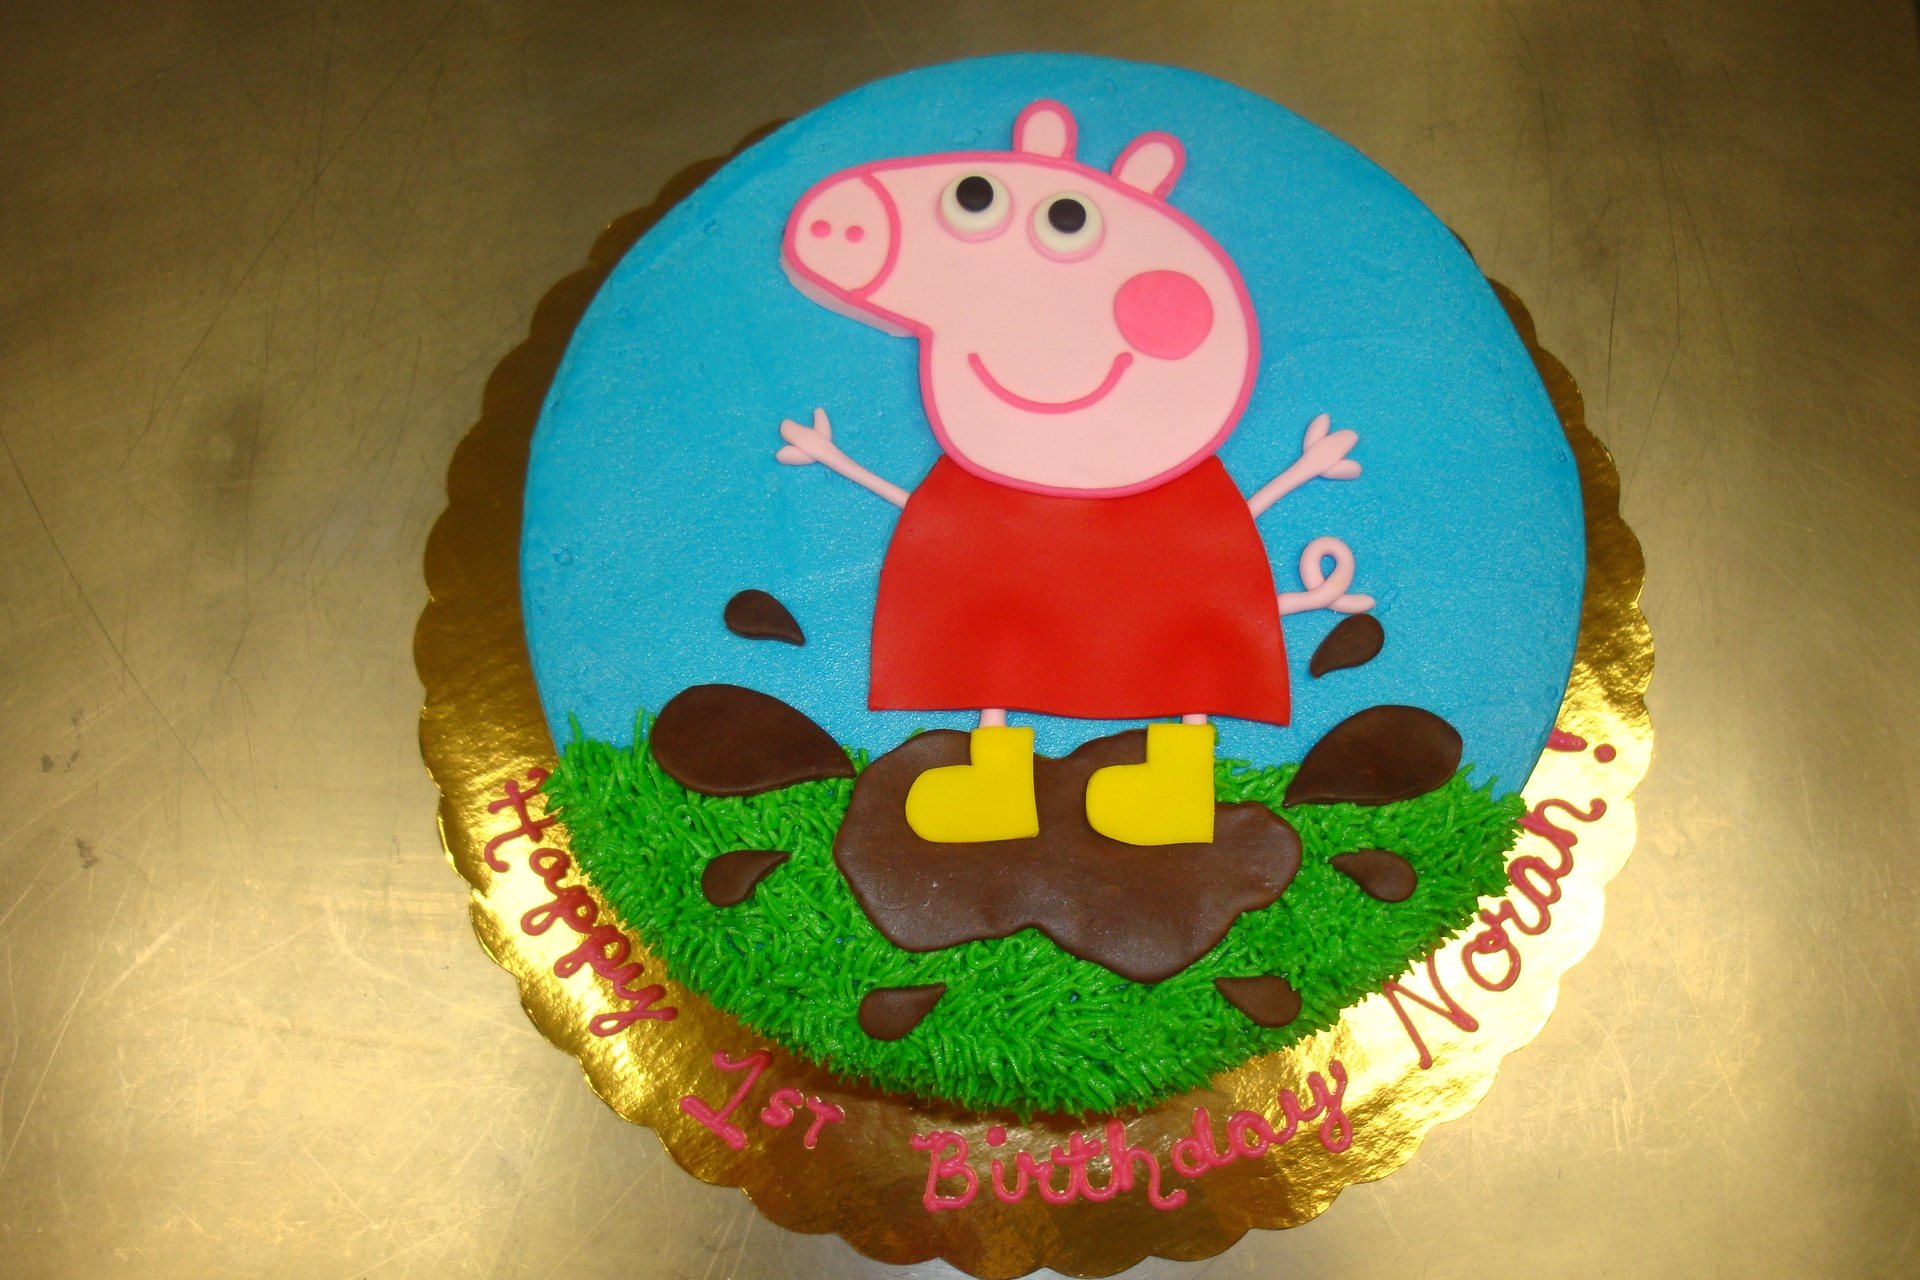 15 serving Peppa in mud $75 (no flowers)